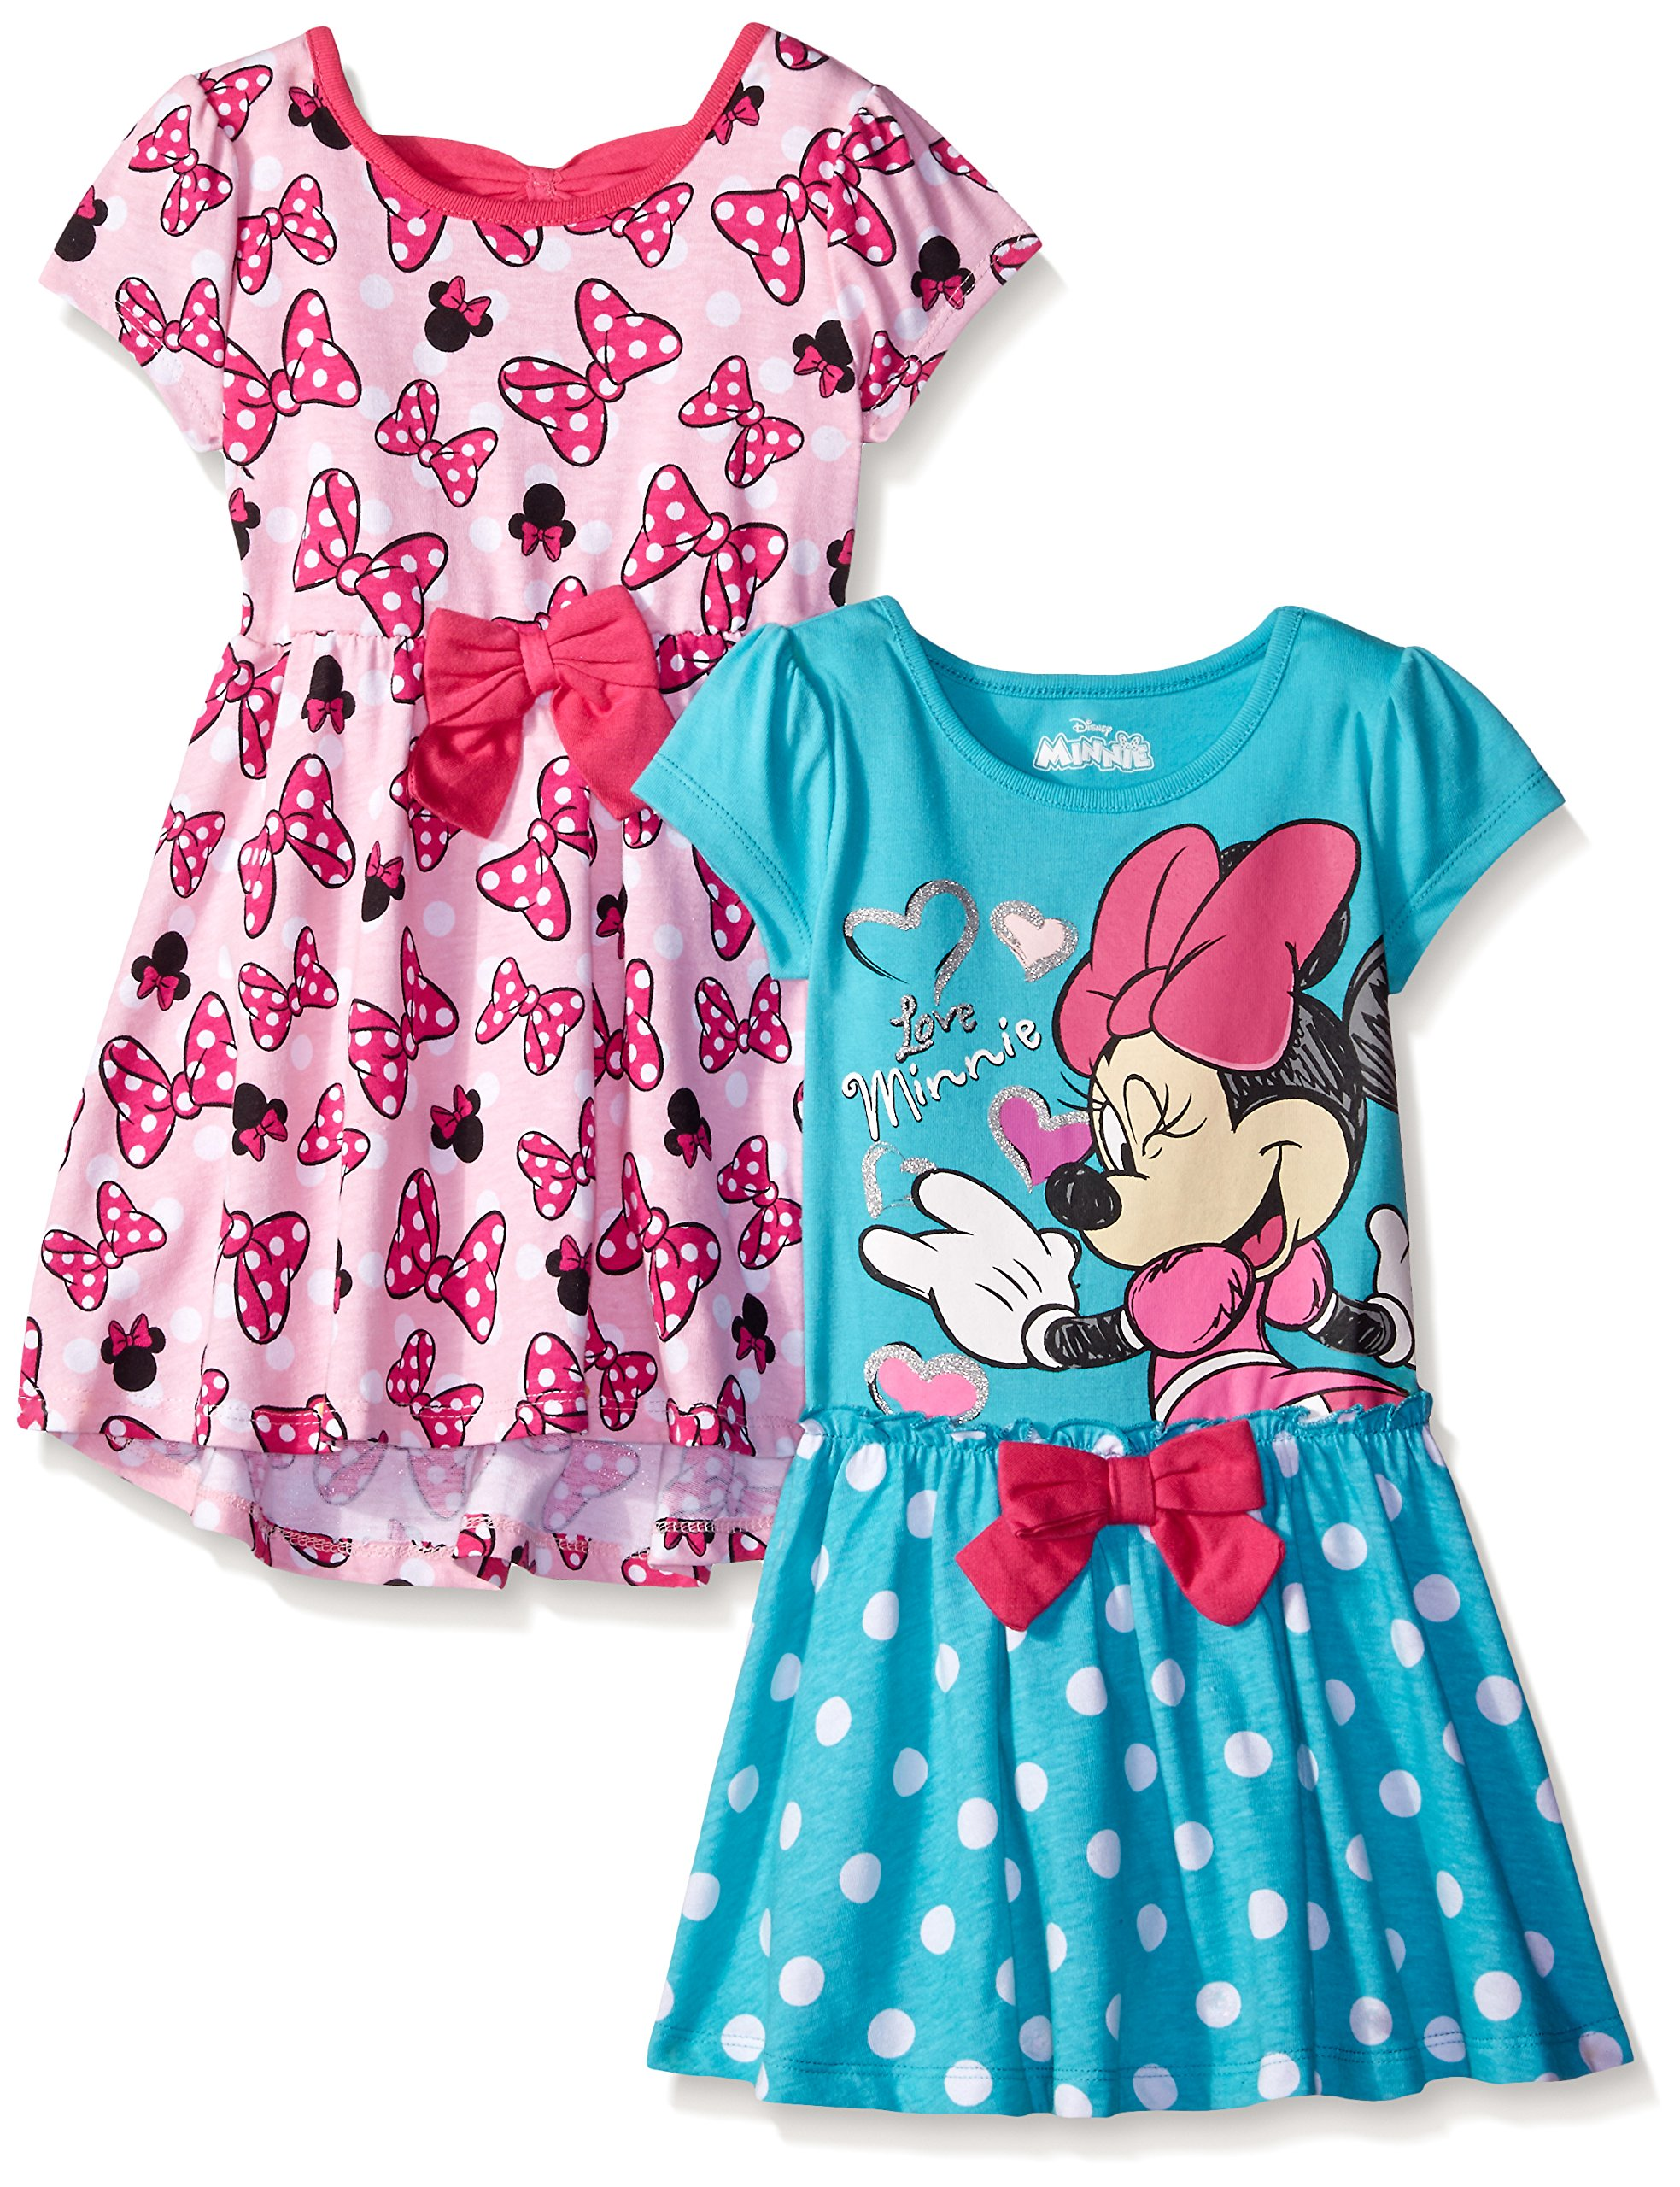 Disney Little Girls' 2 Pack Love Minnie Dresses, Pink, 6X